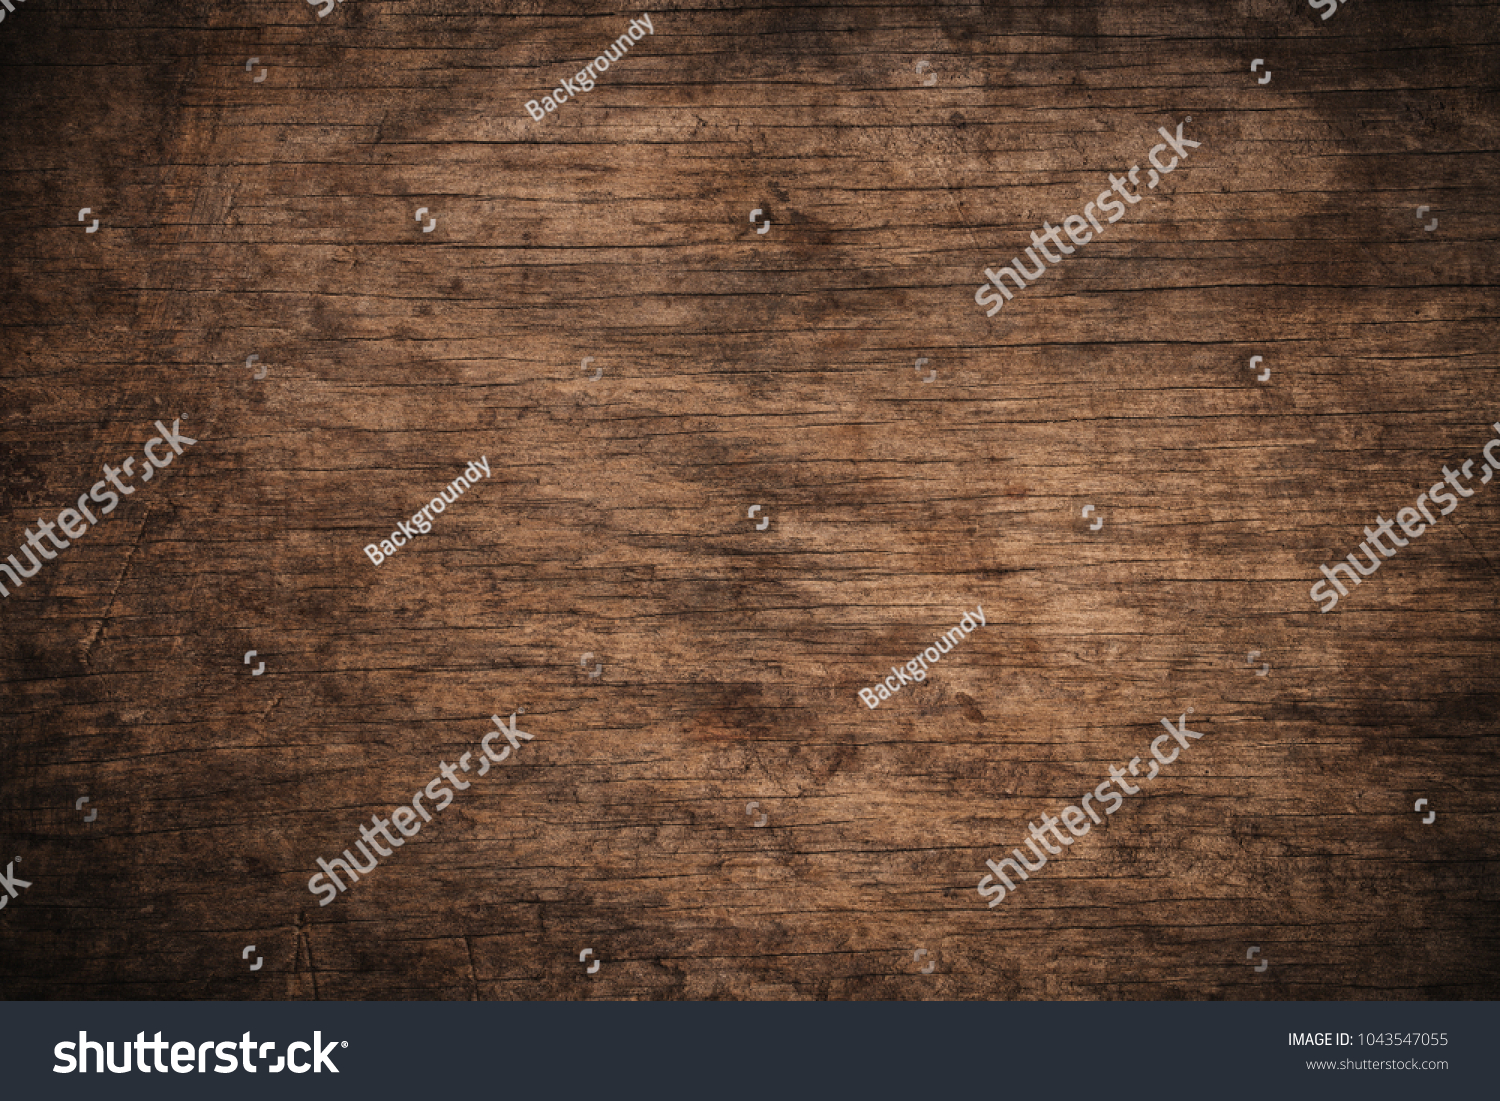 Old grunge dark textured wooden background,The surface of the old brown wood texture,top view brown wood panelitng #1043547055